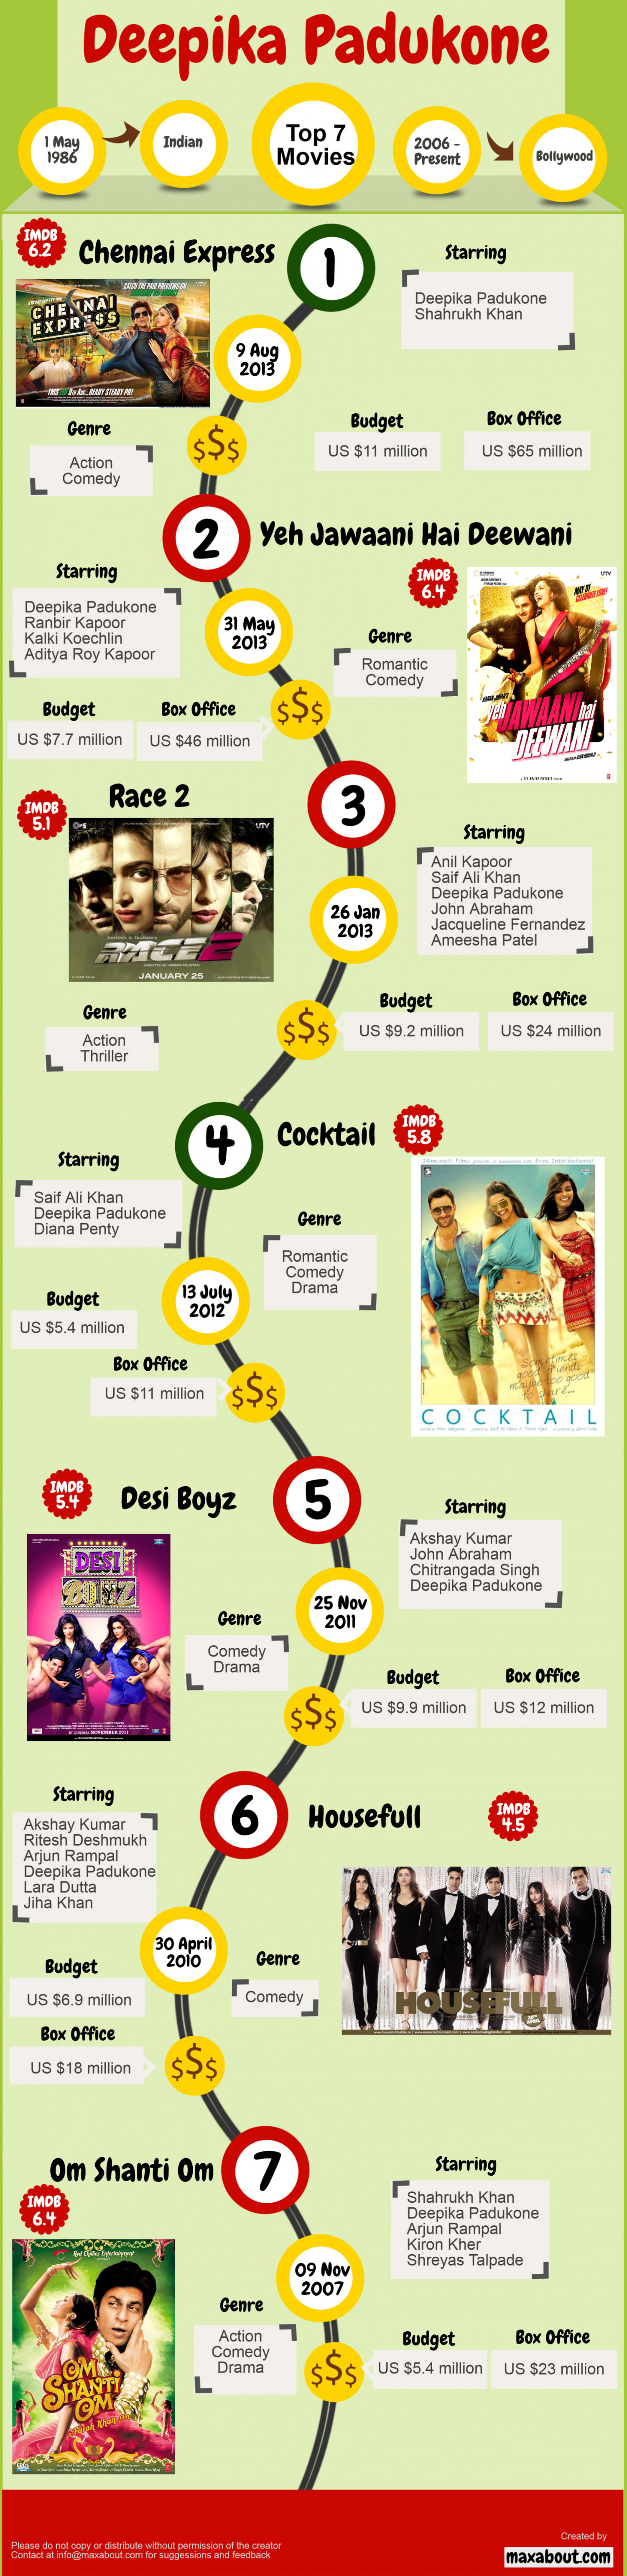 Top 7 Movies of Deepika Padukone Infographic